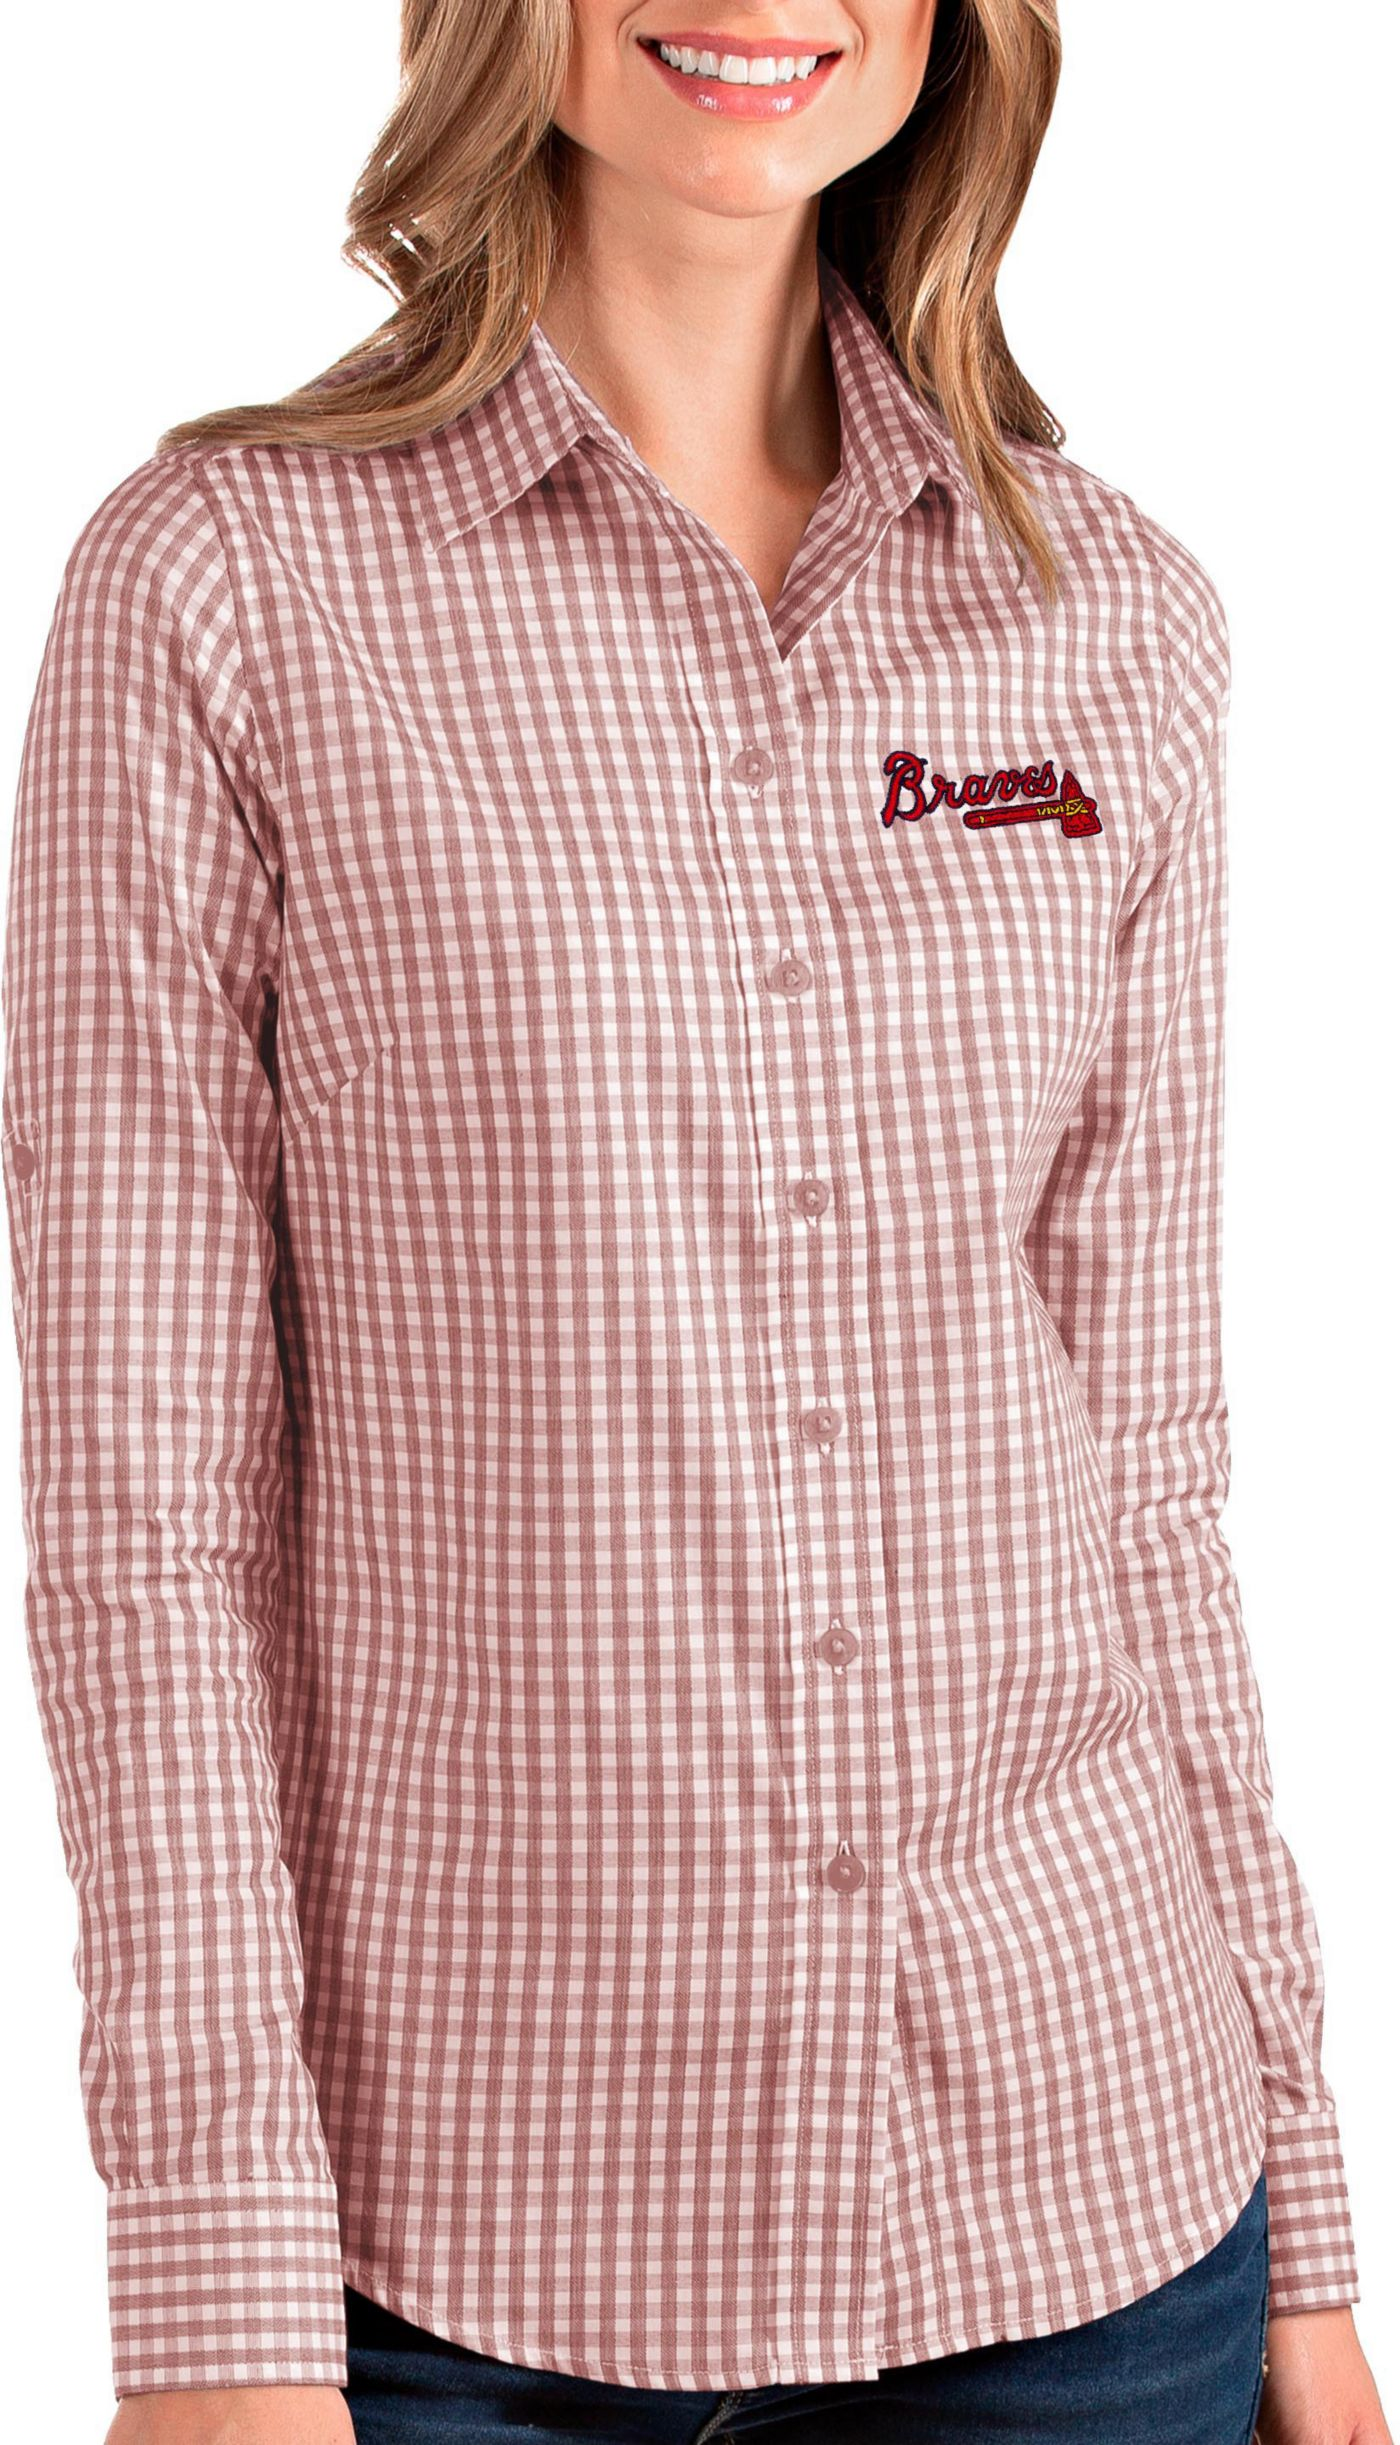 Antigua Women's Atlanta Braves Structure Button-Up Red Long Sleeve Shirt